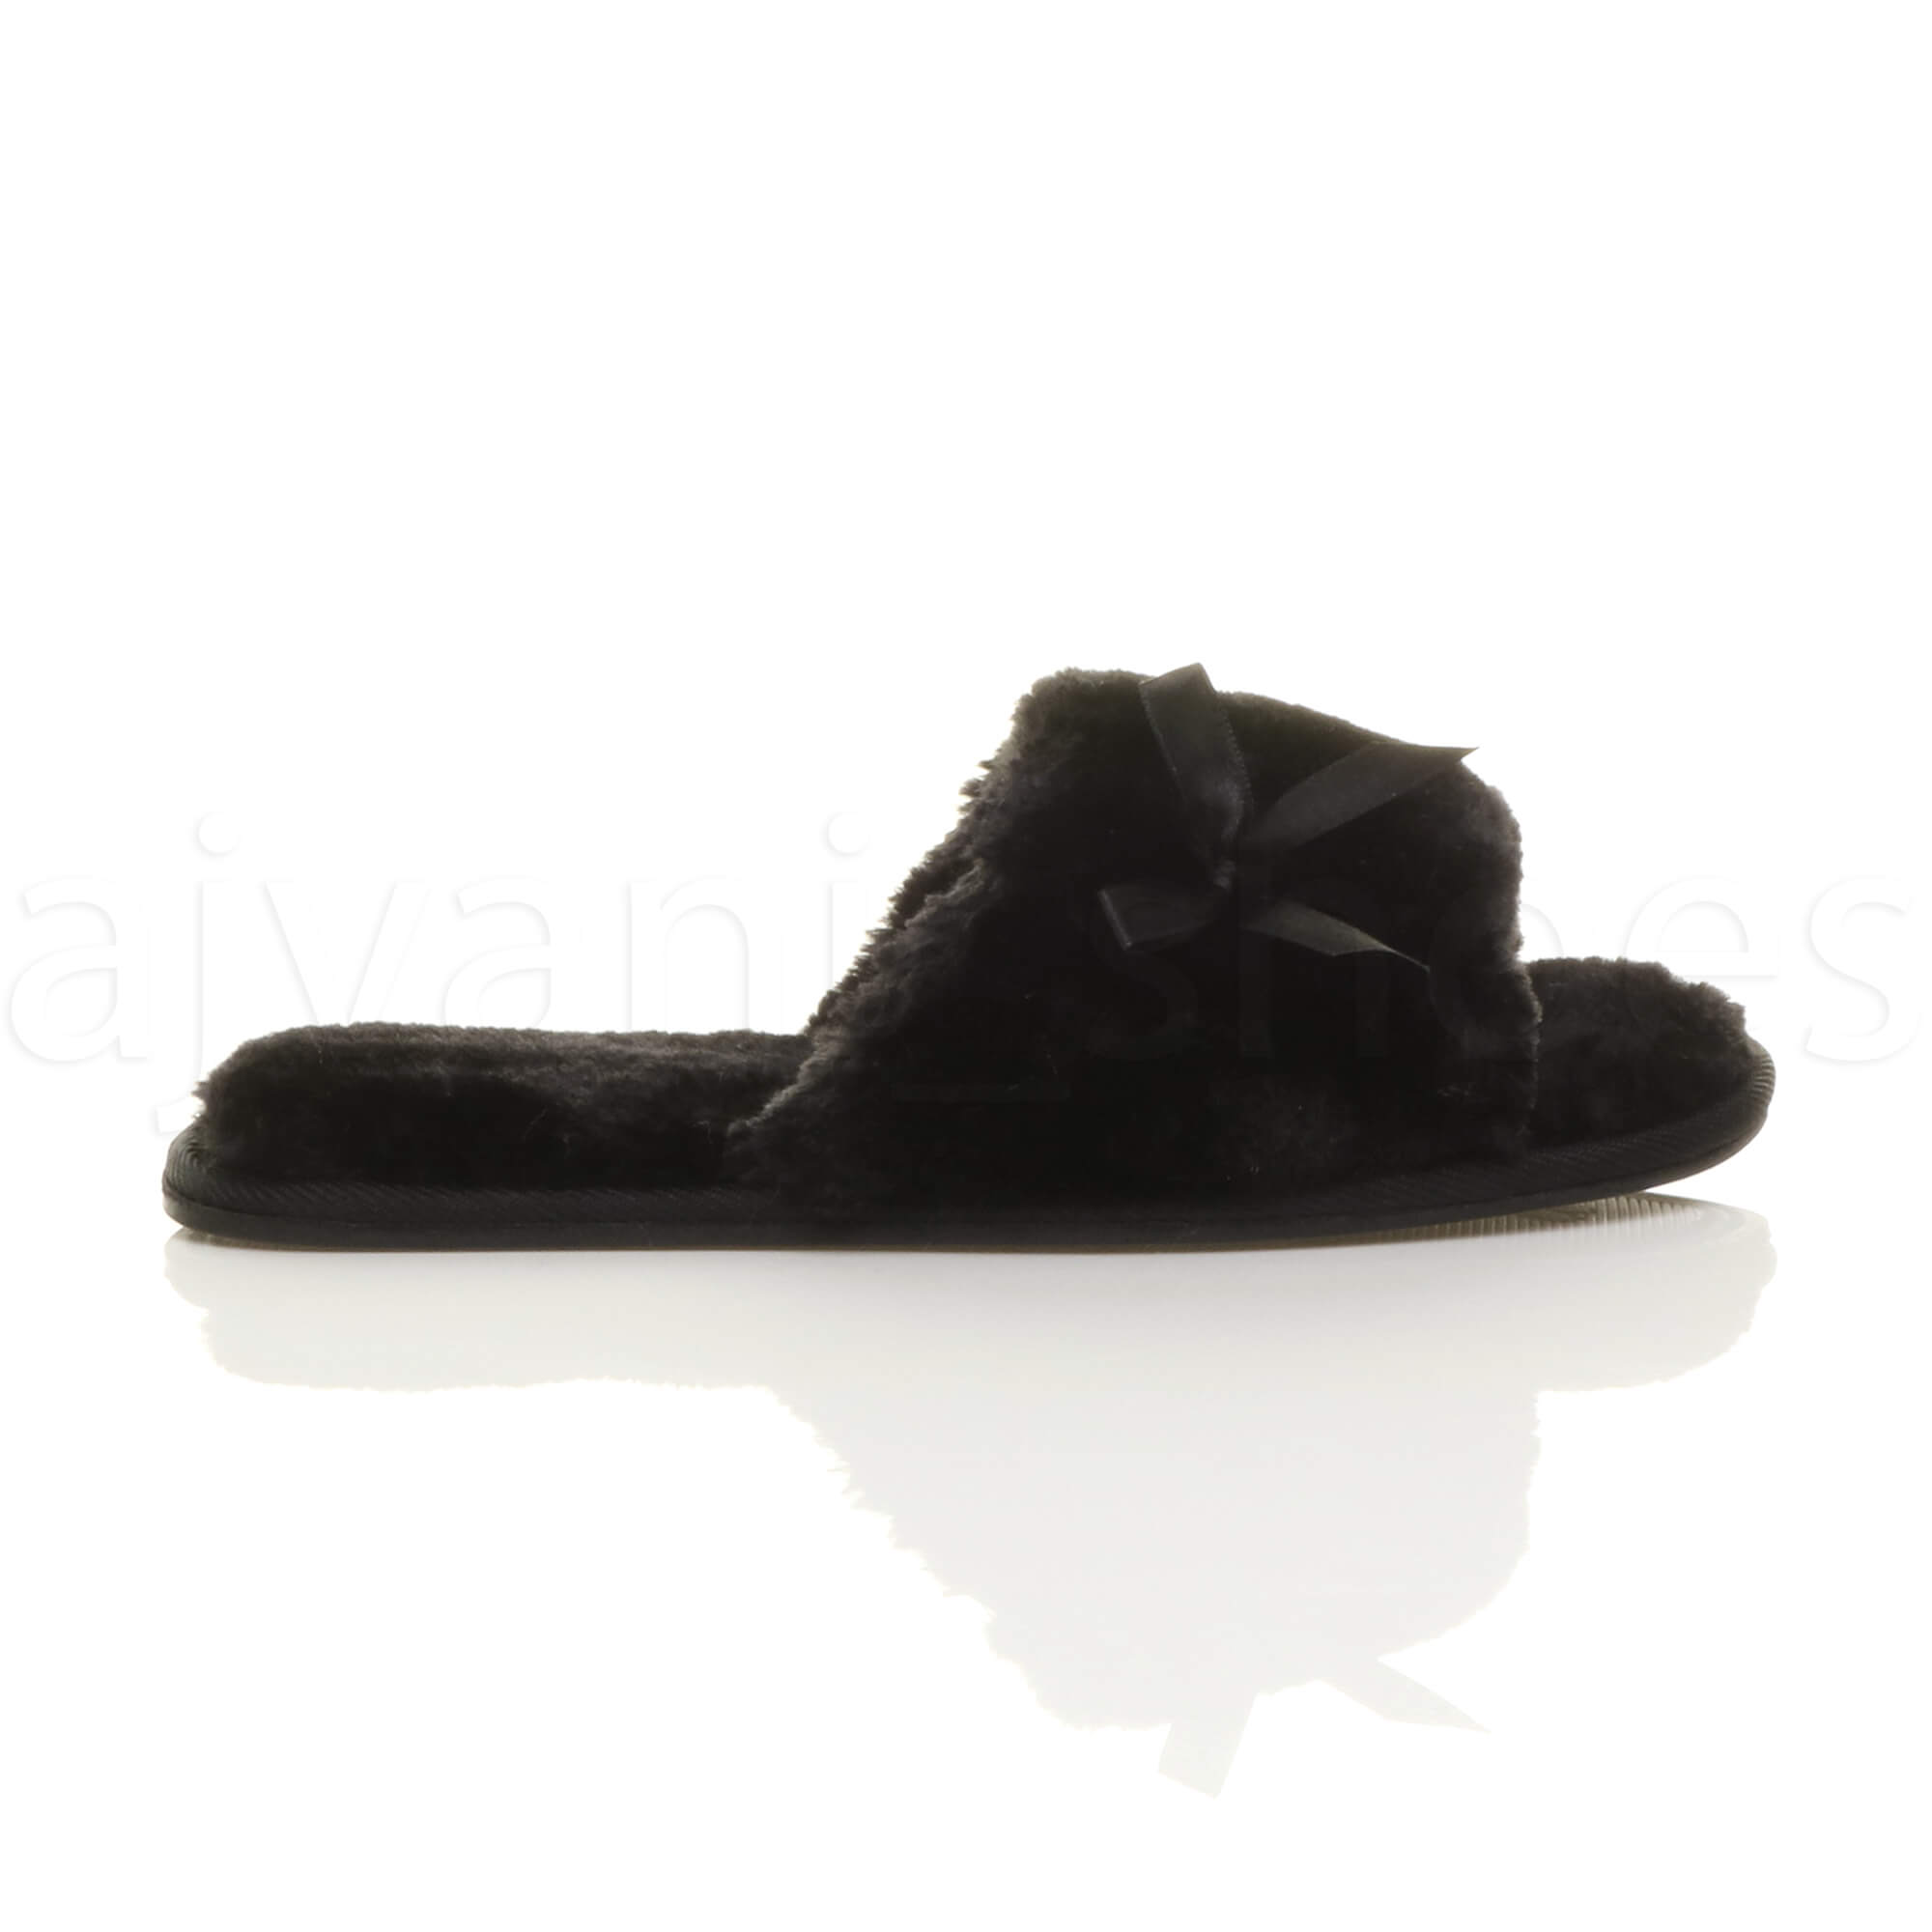 WOMENS-LADIES-FLAT-PEEP-TOE-BOW-LUXURY-COSY-FUR-LINED-SLIP-ON-SLIPPERS-SIZE thumbnail 11